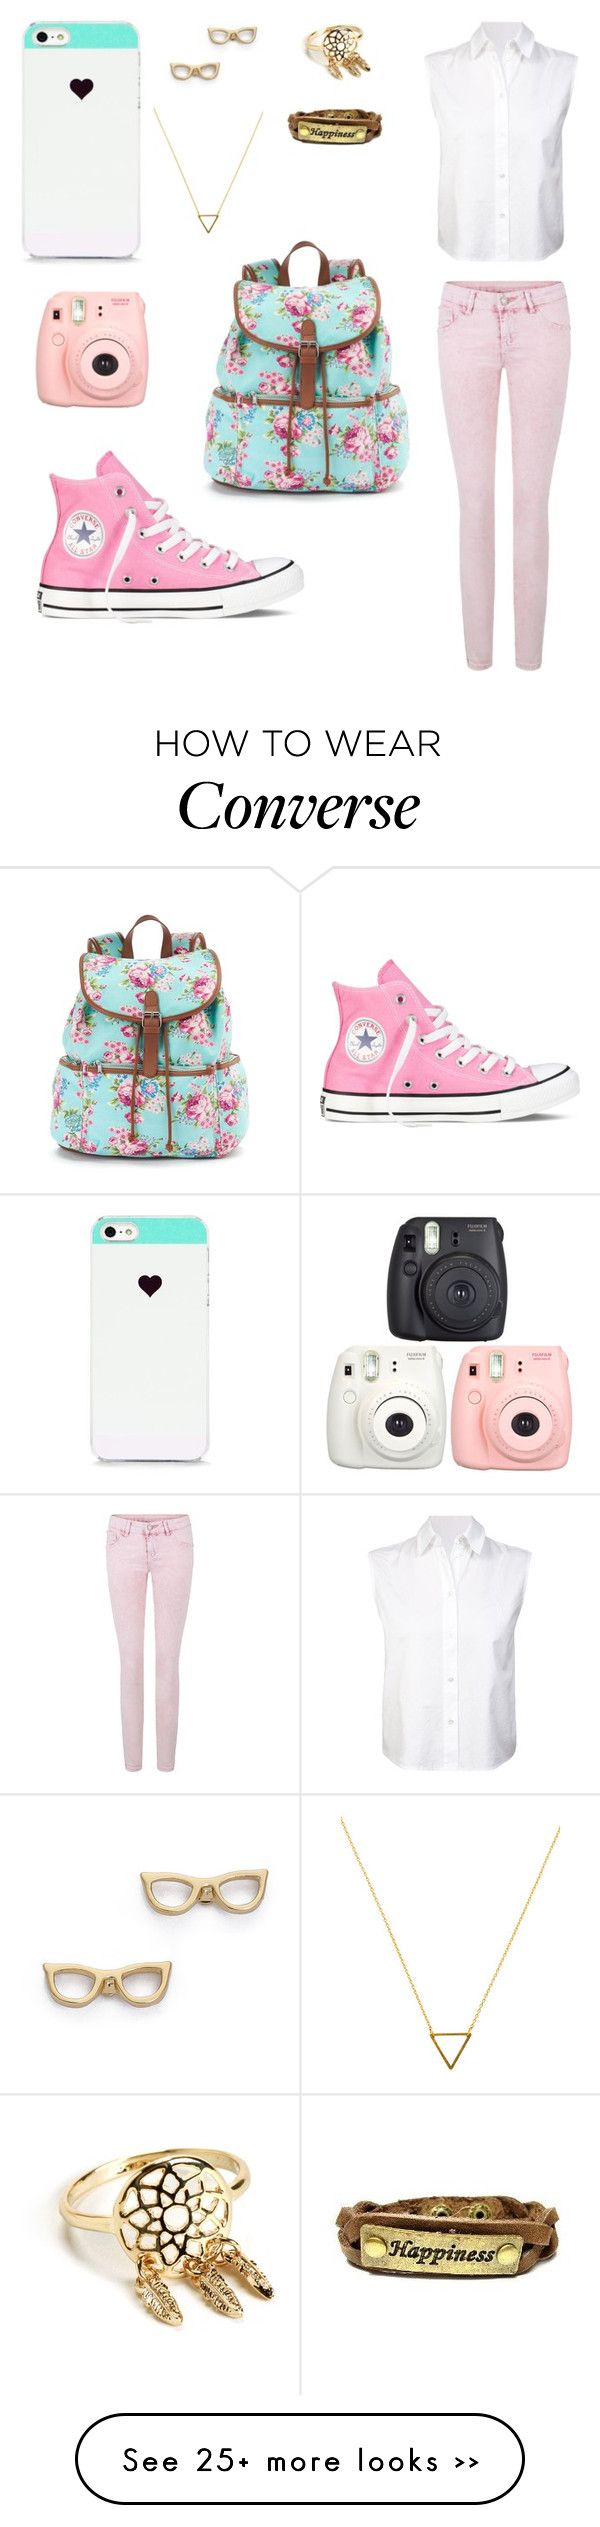 """Untitled #69"" by kitkatblue on Polyvore"